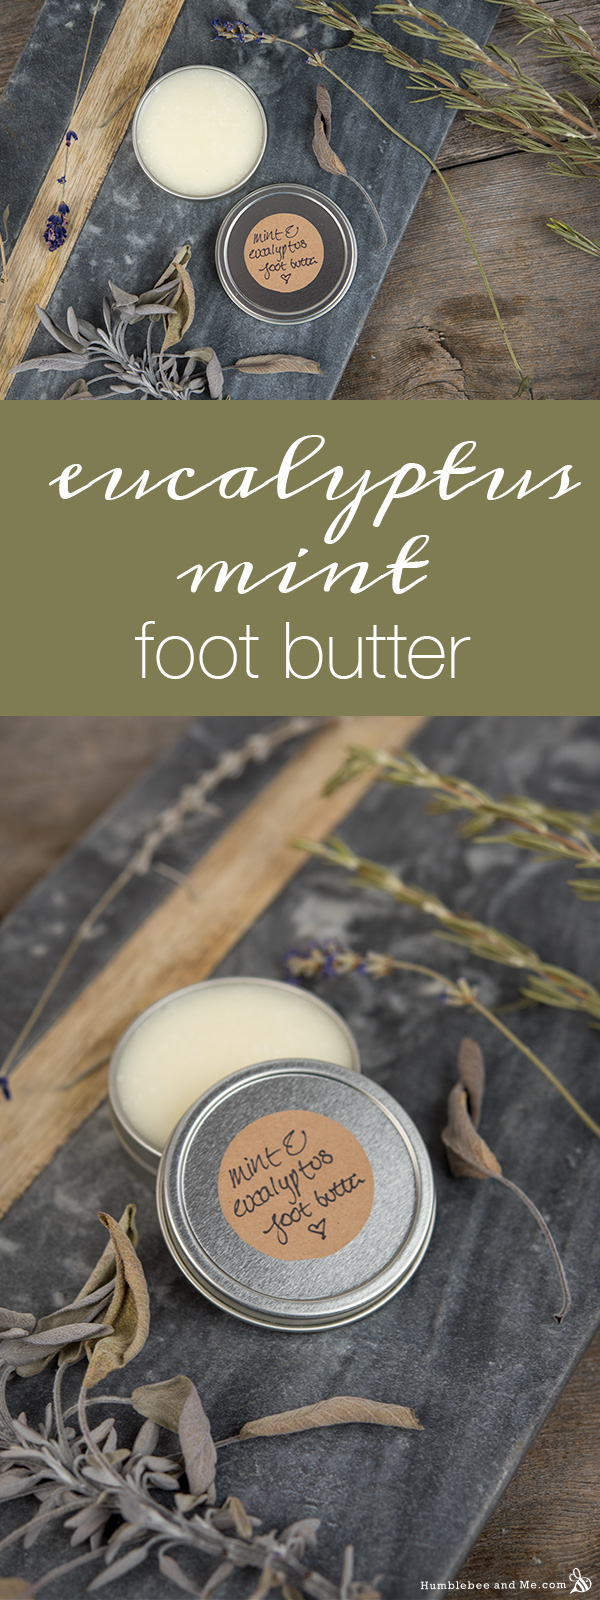 How to Make Eucalyptus Mint Foot Butter